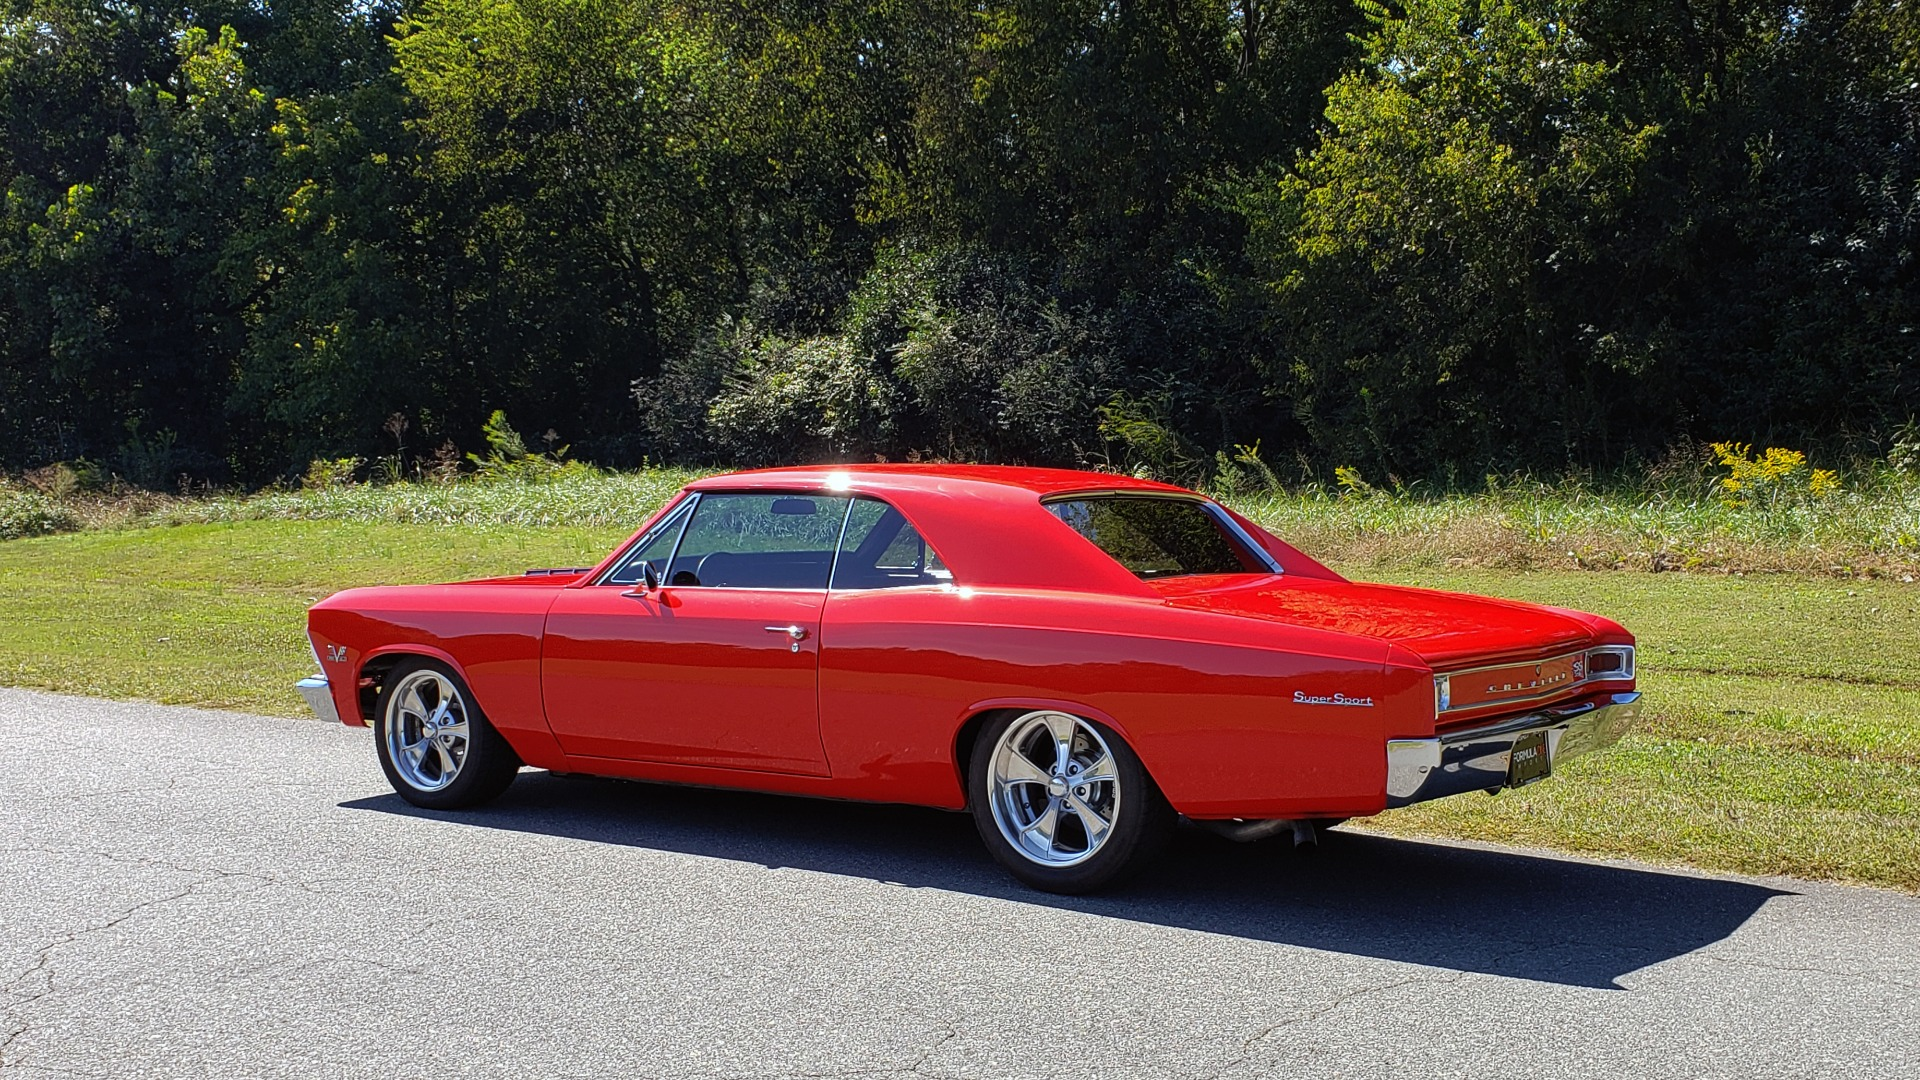 Used 1966 Chevrolet CHEVELLE SS 396 CUSTOM RESTO-MOD / 4-SPEED MANUAL / 12-BOLT REAR for sale $79,999 at Formula Imports in Charlotte NC 28227 7